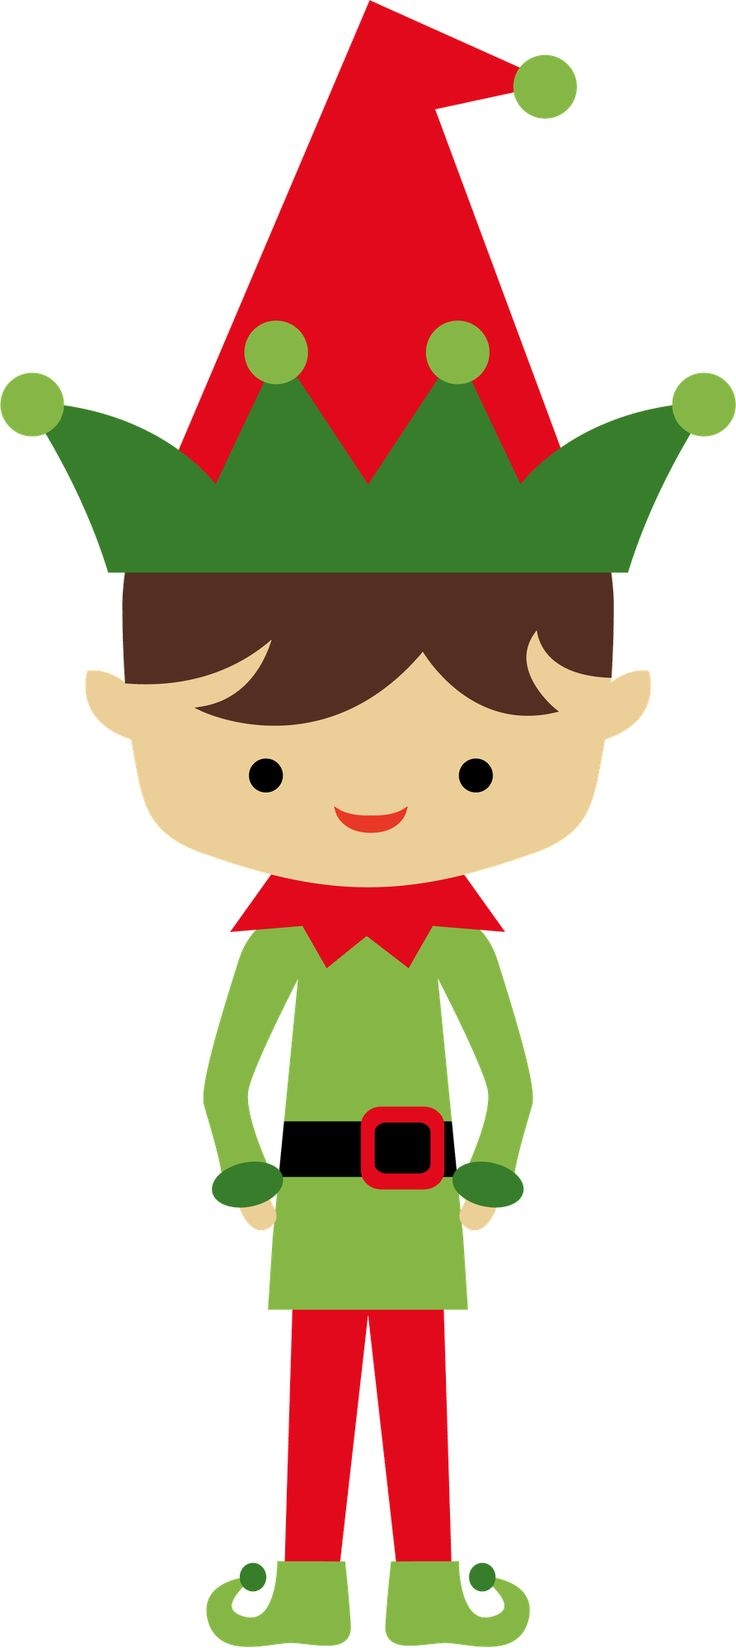 Elf clipart thing. Awesome christmas design digital